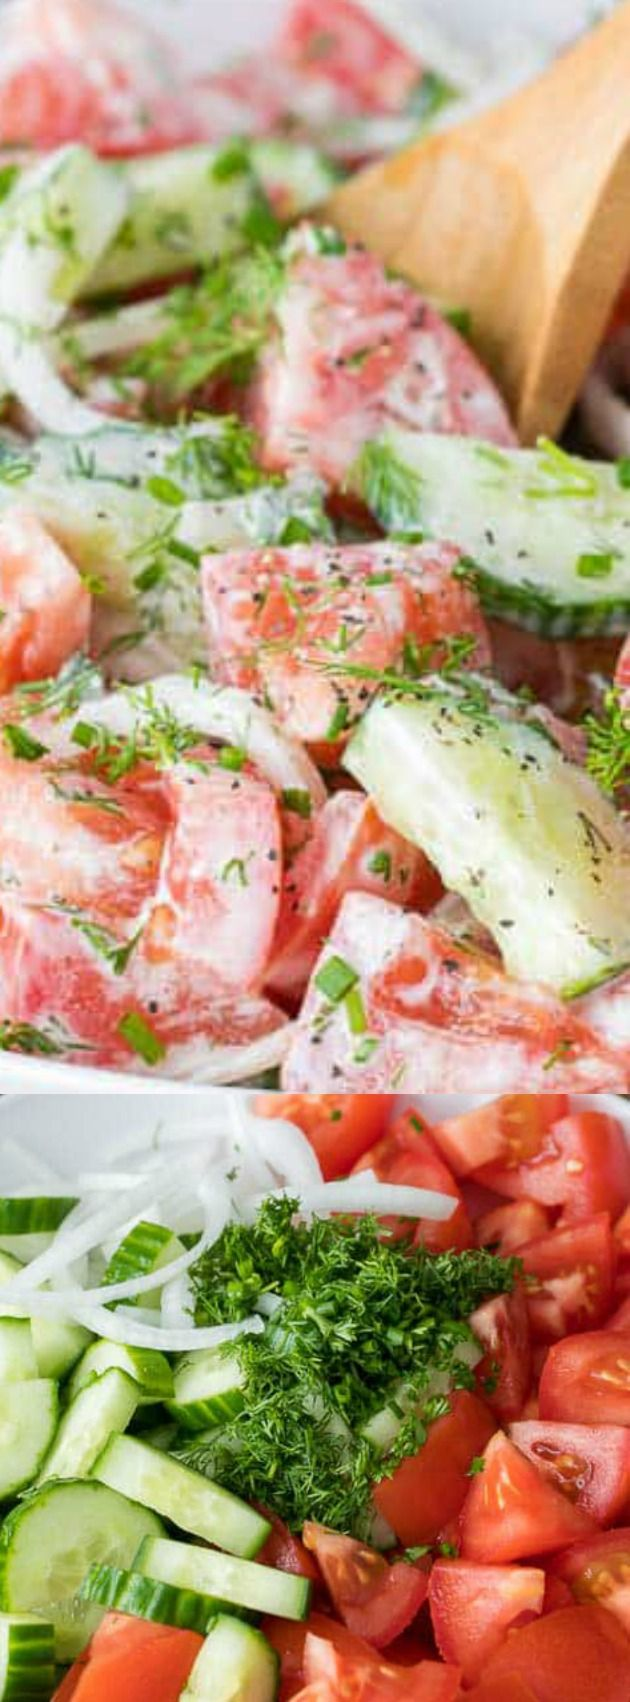 This Creamy Cucumber Tomato Salad from Spend With Pennies is the perfect side salad for any time of year. It is packed with juicy ripe tomatoes, crisp cucumbers, and fresh herbs, all topped off with a creamy dressing!